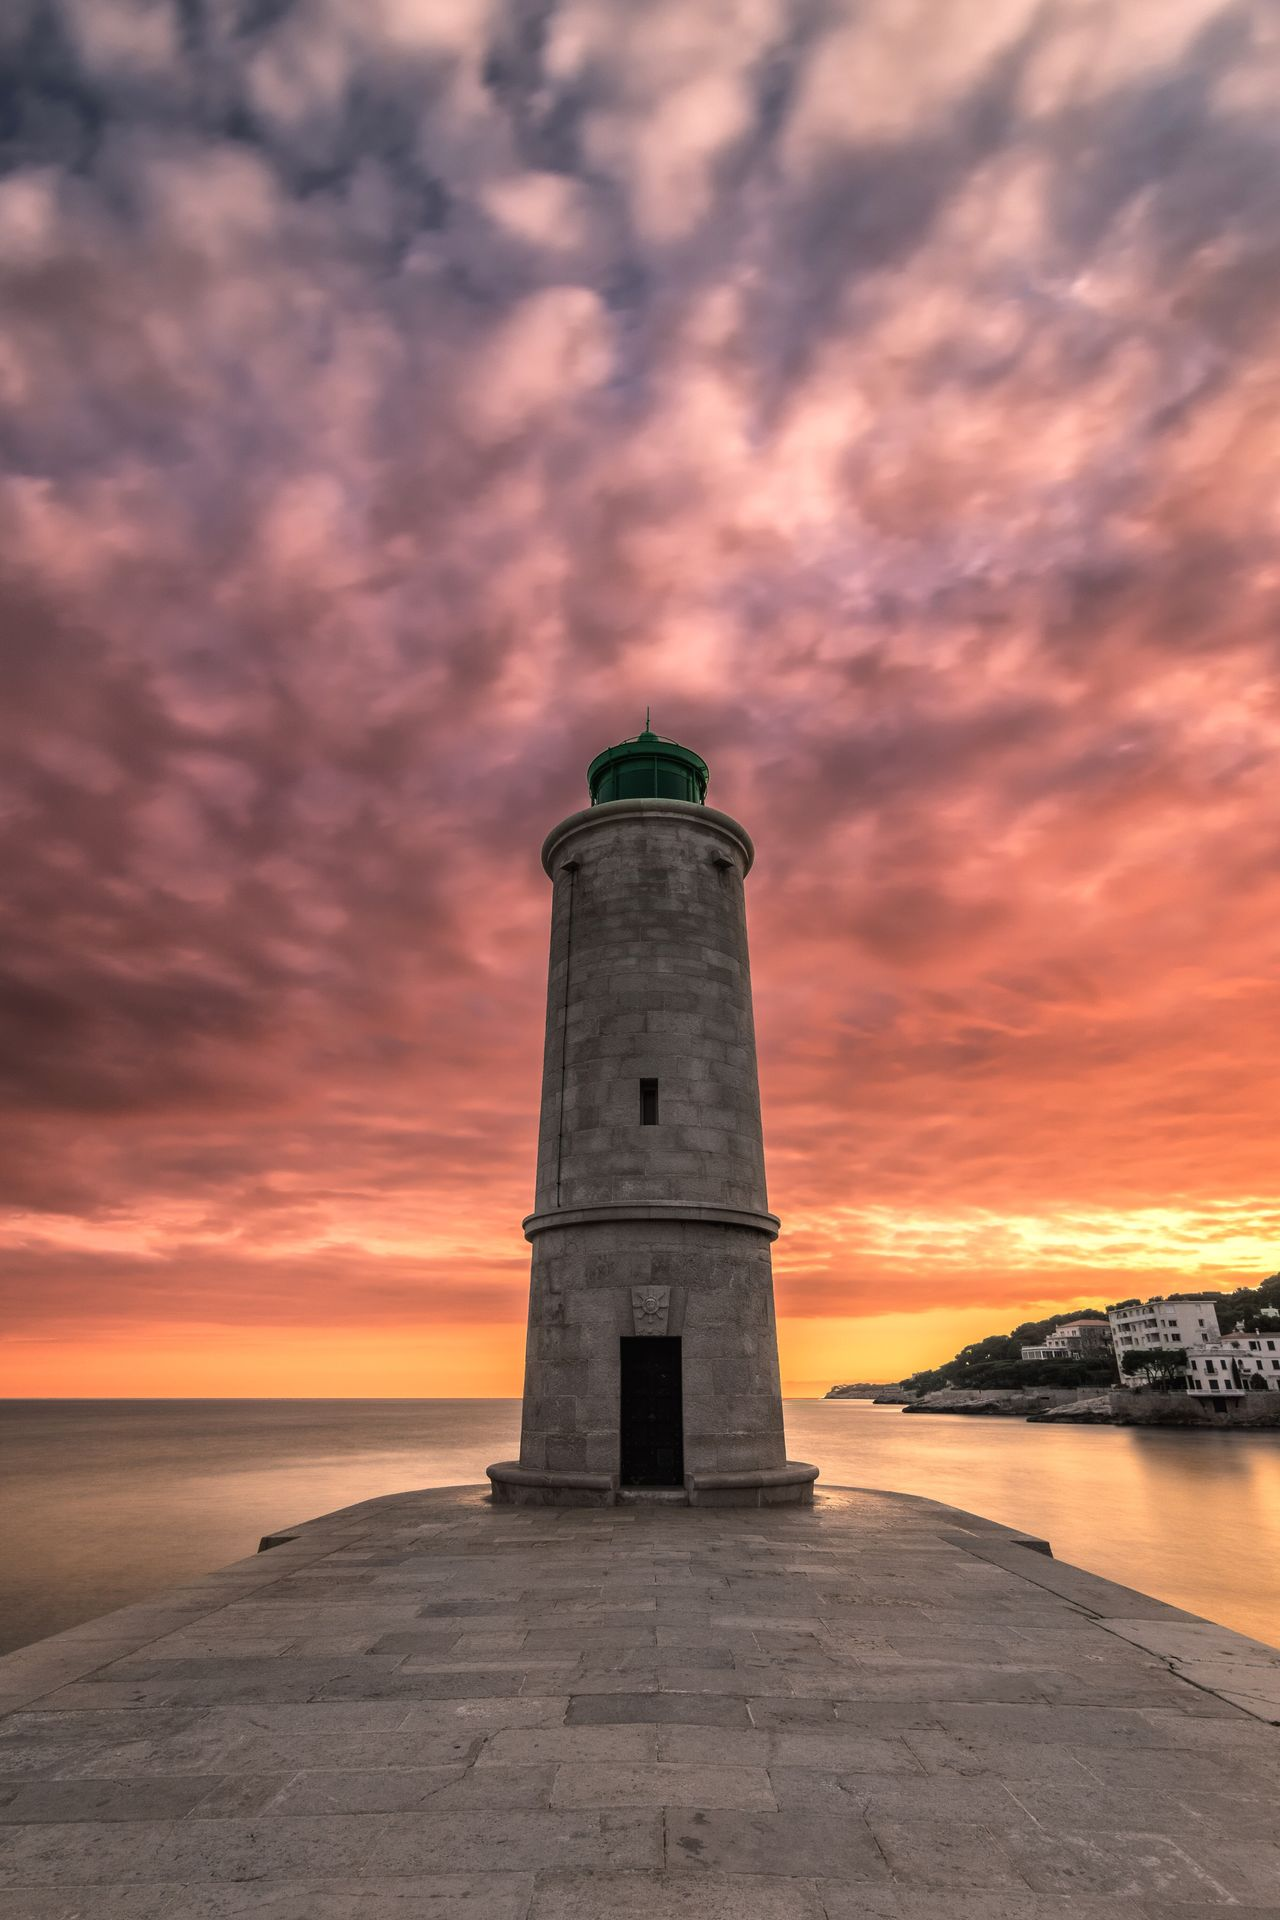 Standing still. Long exposure single shot, the lighthouse from Cassis versus burning sunset sky. Mediterranean feel. Lighthouse Sea Sunset Cloud - Sky Burning Sky Sky Horizon Over Water Beauty In Nature Outdoors Tranquility Beach Romantic Sky Scenics Water Travel Destinations Serenity Scenic Landscapes My Travel Photography Long Exposure From A Tourist Perspective France Cassis Travel One Of A Kind  Light And Shadow